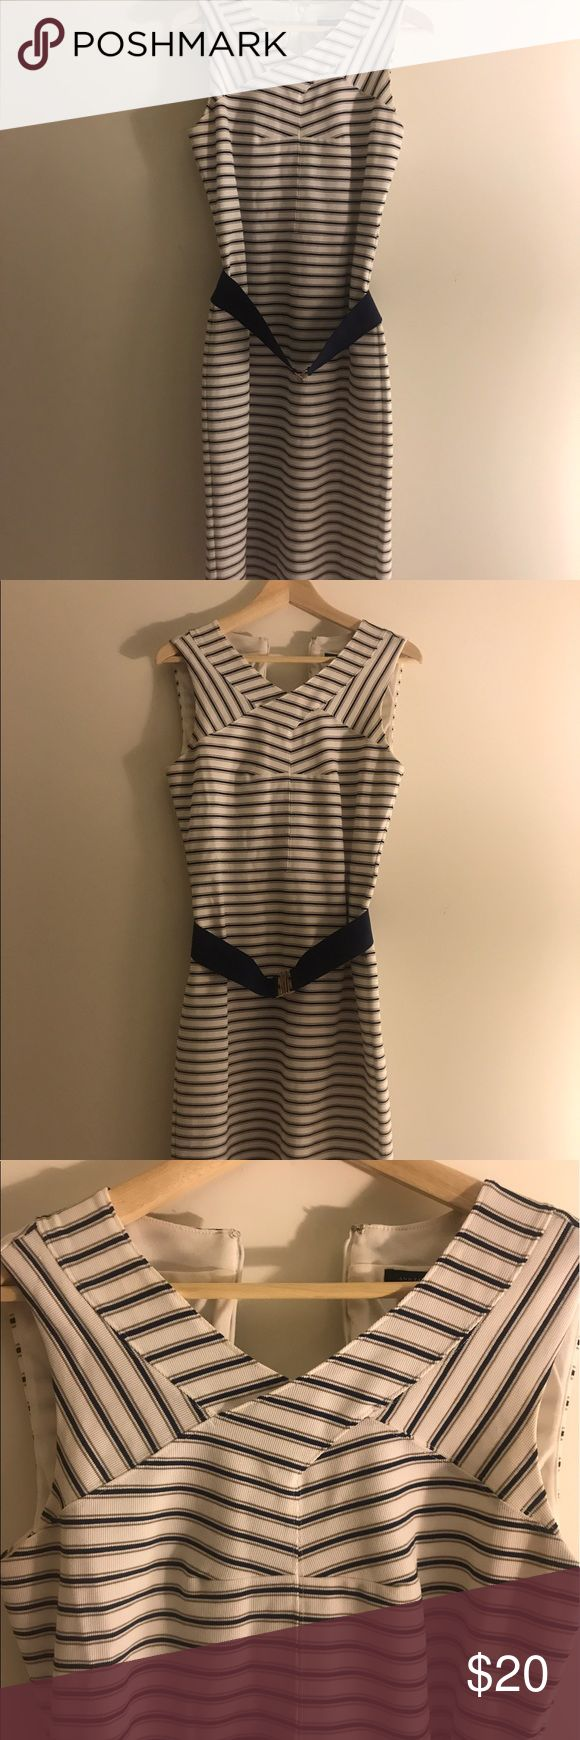 Ann Taylor Striped Bandage Dress with Belt Flaunt your figure in this pre-loved Ann Taylor fitted dress complete with navy blue belt.  This nautical theme dress has a bandage top and is a size 6 and had navy, white and tan stripes.  It pairs well with a jean jacket and espadrilles or on its own for an evening out.  Worn one time. The hem lands just south of the knees. Ann Taylor Dresses Midi